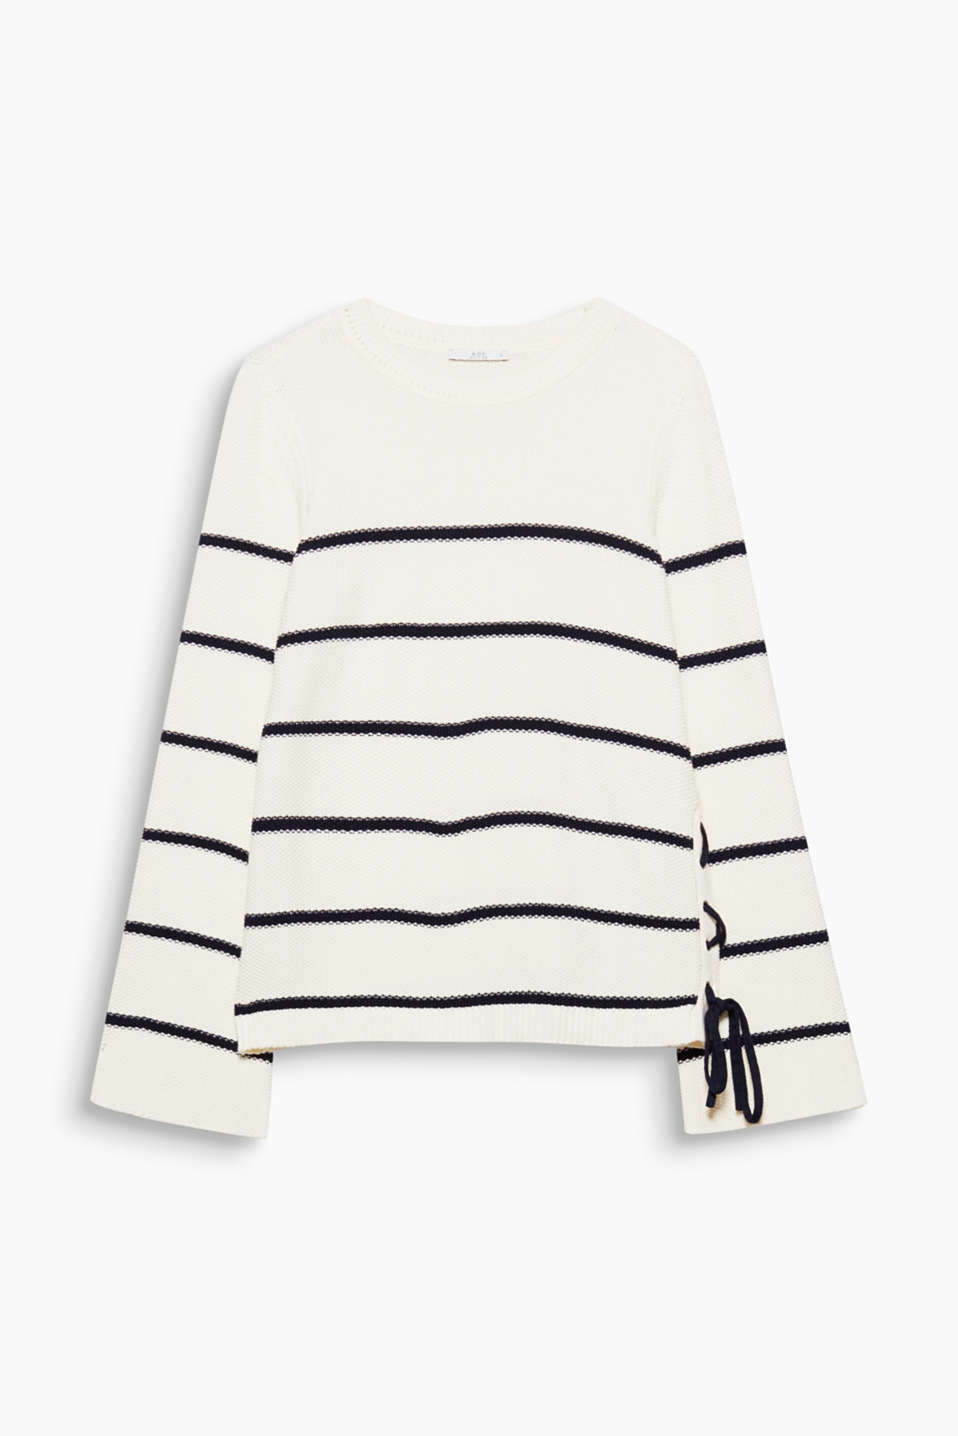 Striking textured yarn, nautical stripes and cool lacing join forces on this jumper.